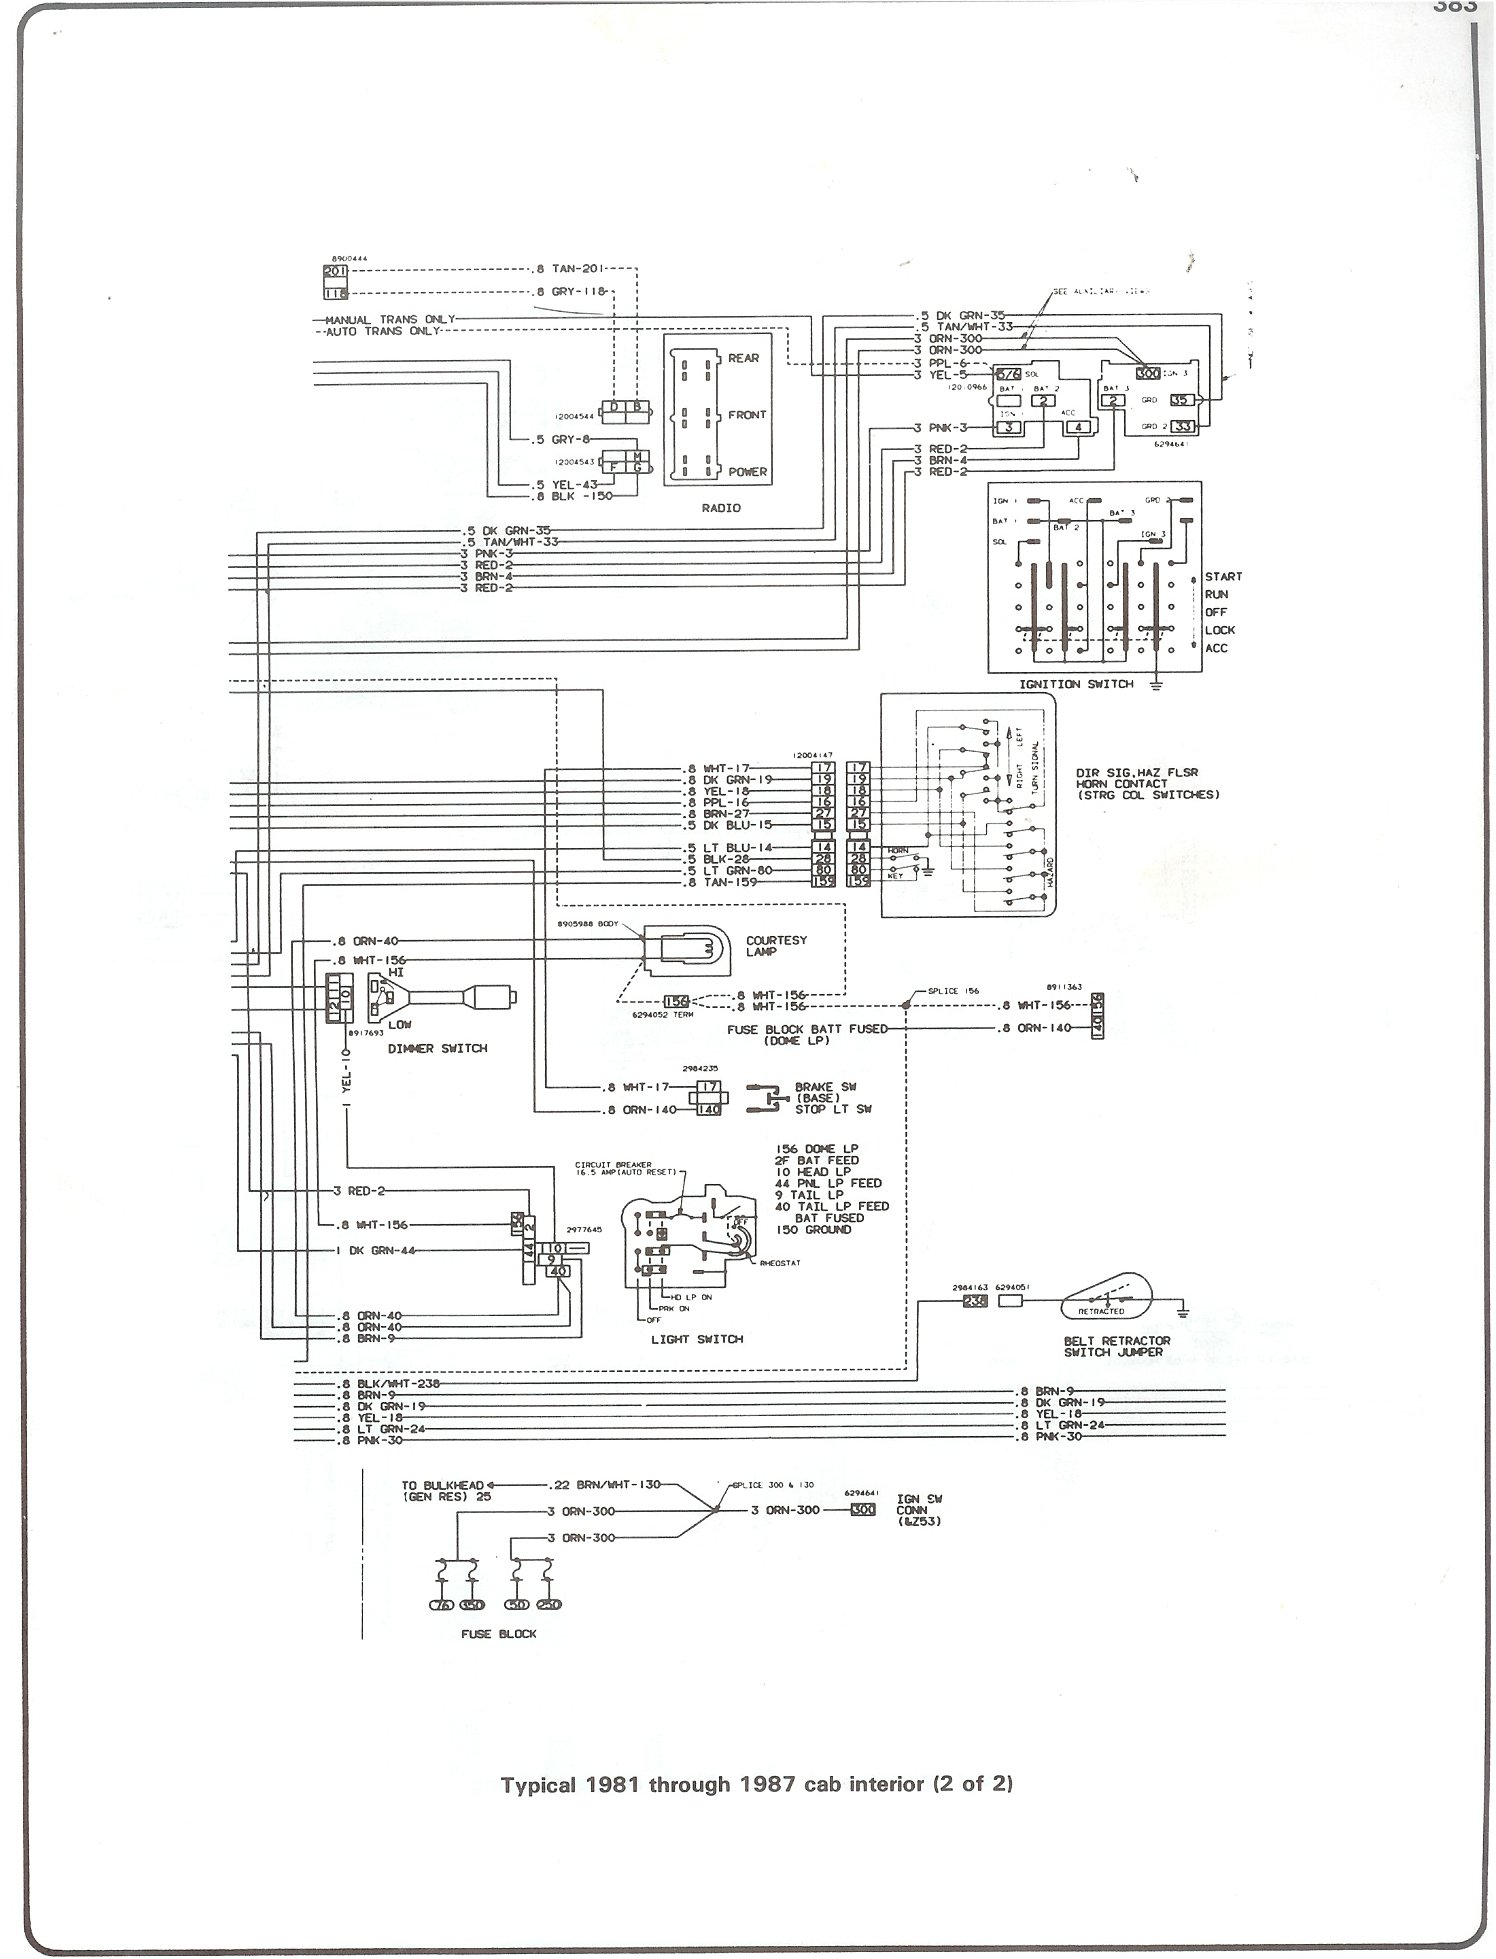 Complete 73 87 Wiring Diagrams 1990 Chevy G30 Diagram 81 Cab Interior Page 2